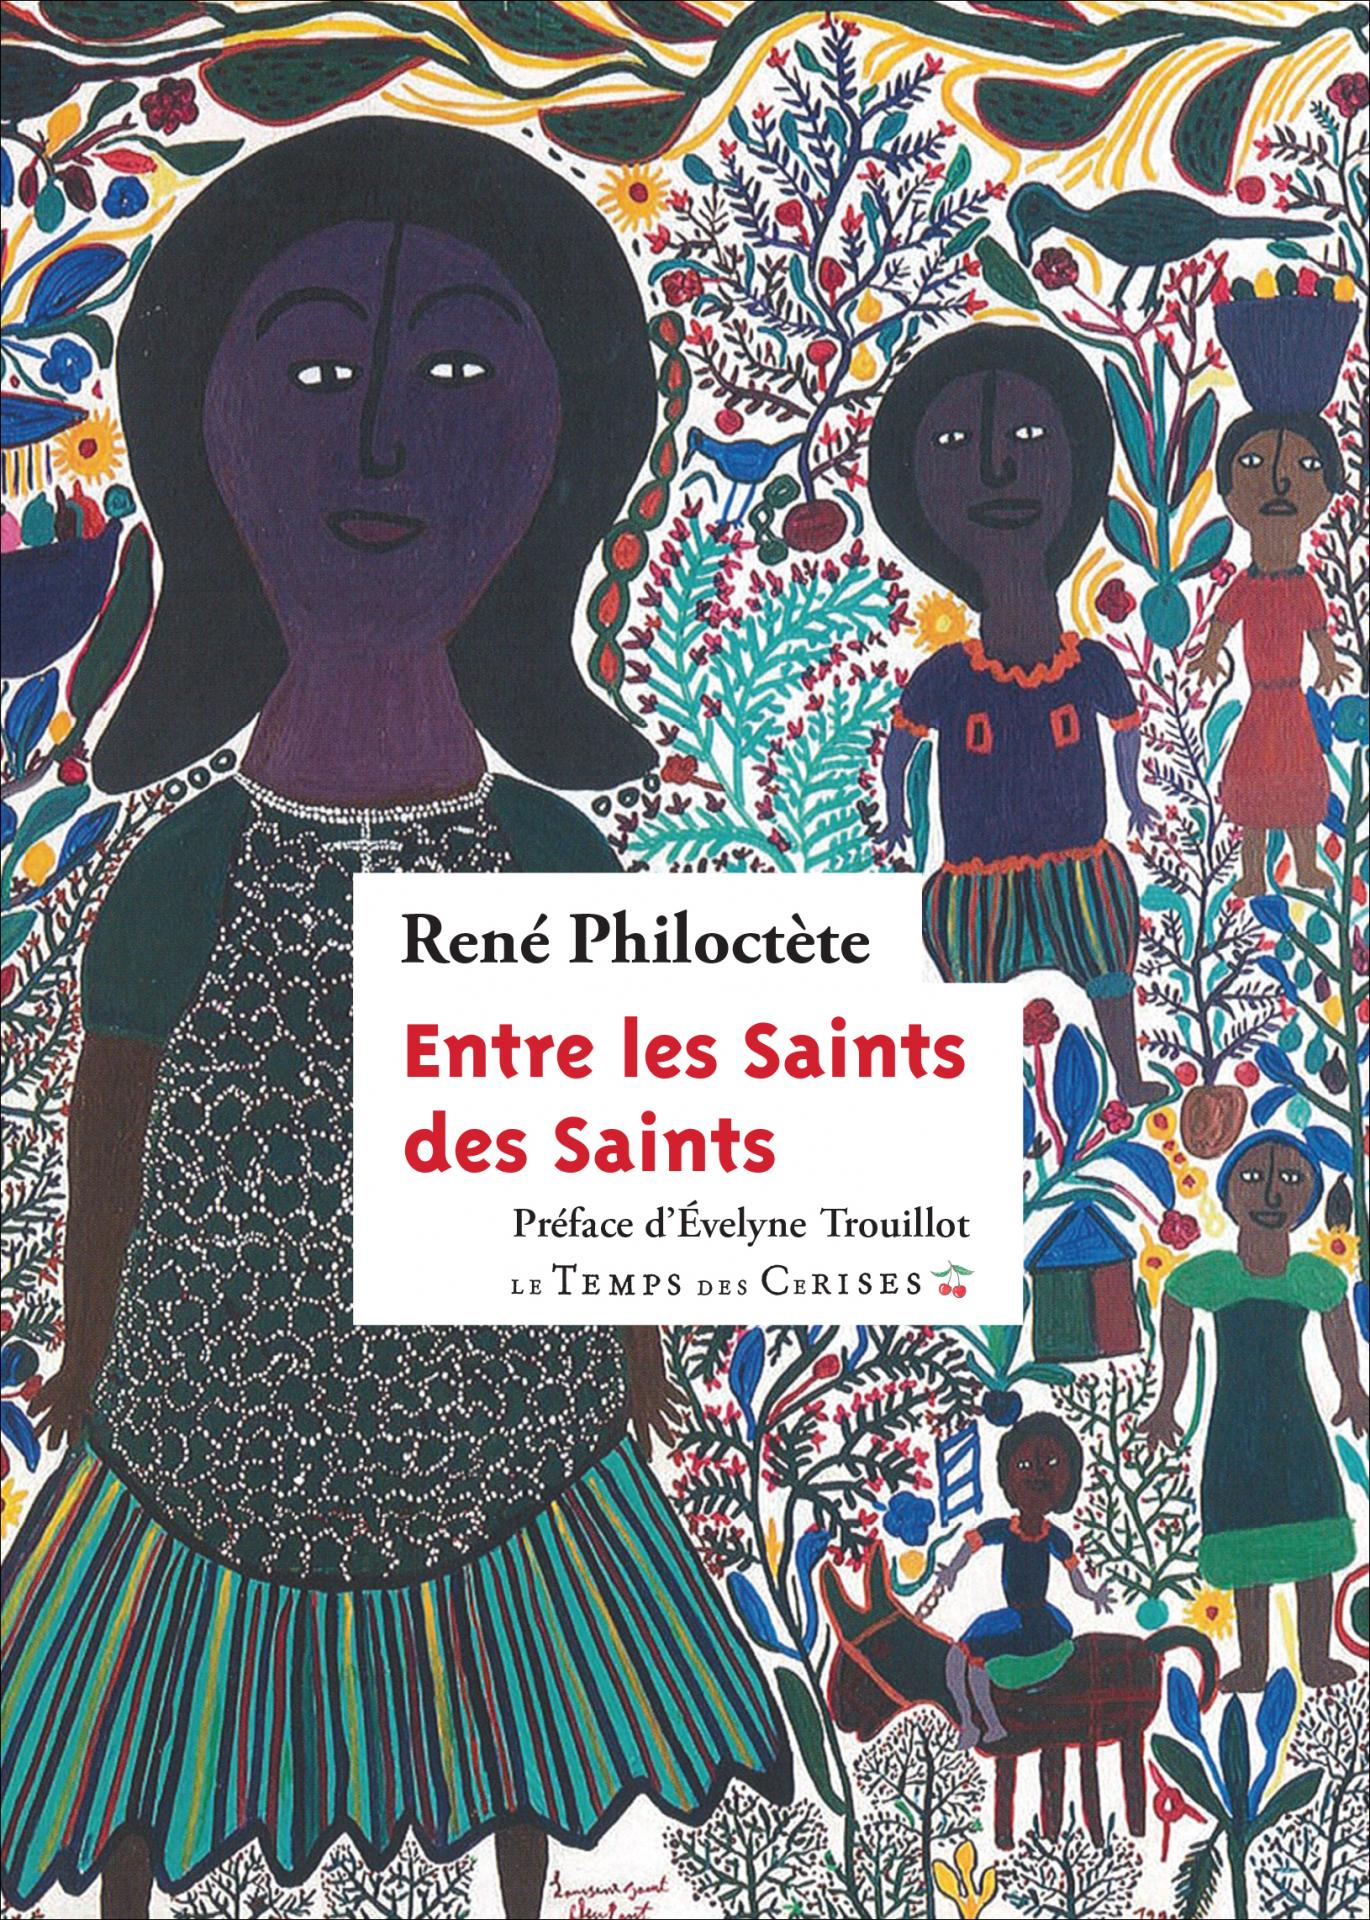 Couv philoctete entre les saints des saints